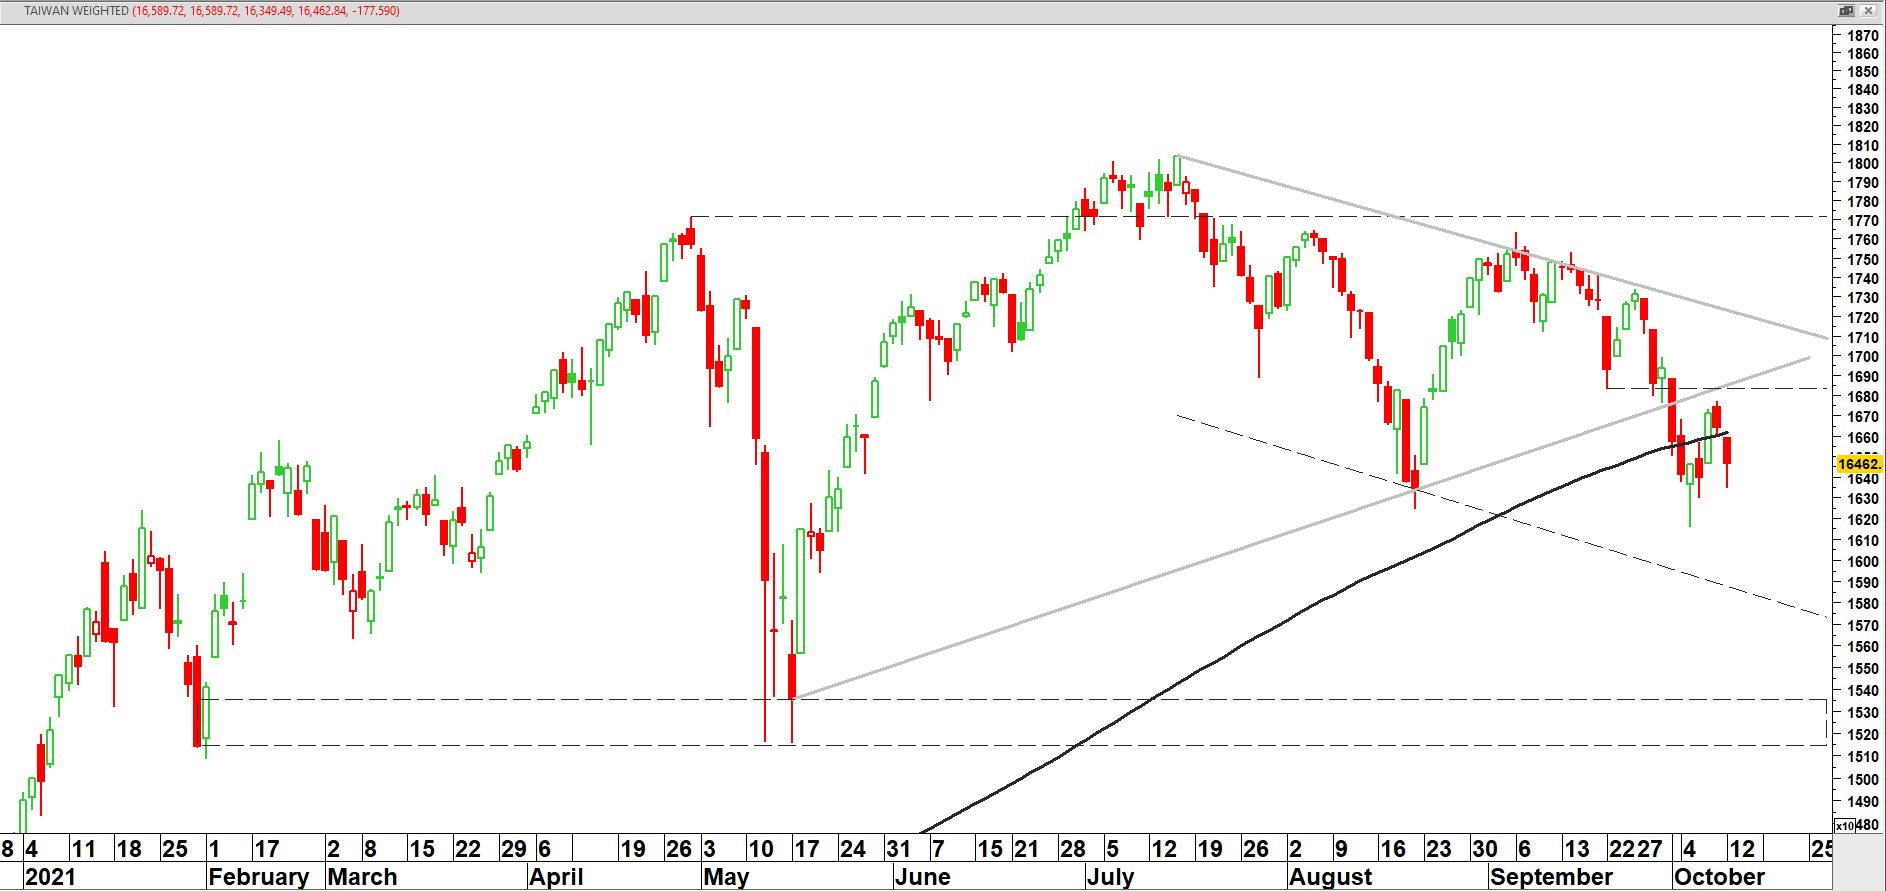 Taiwan Capitalization Weighted Stock Index (TWII)